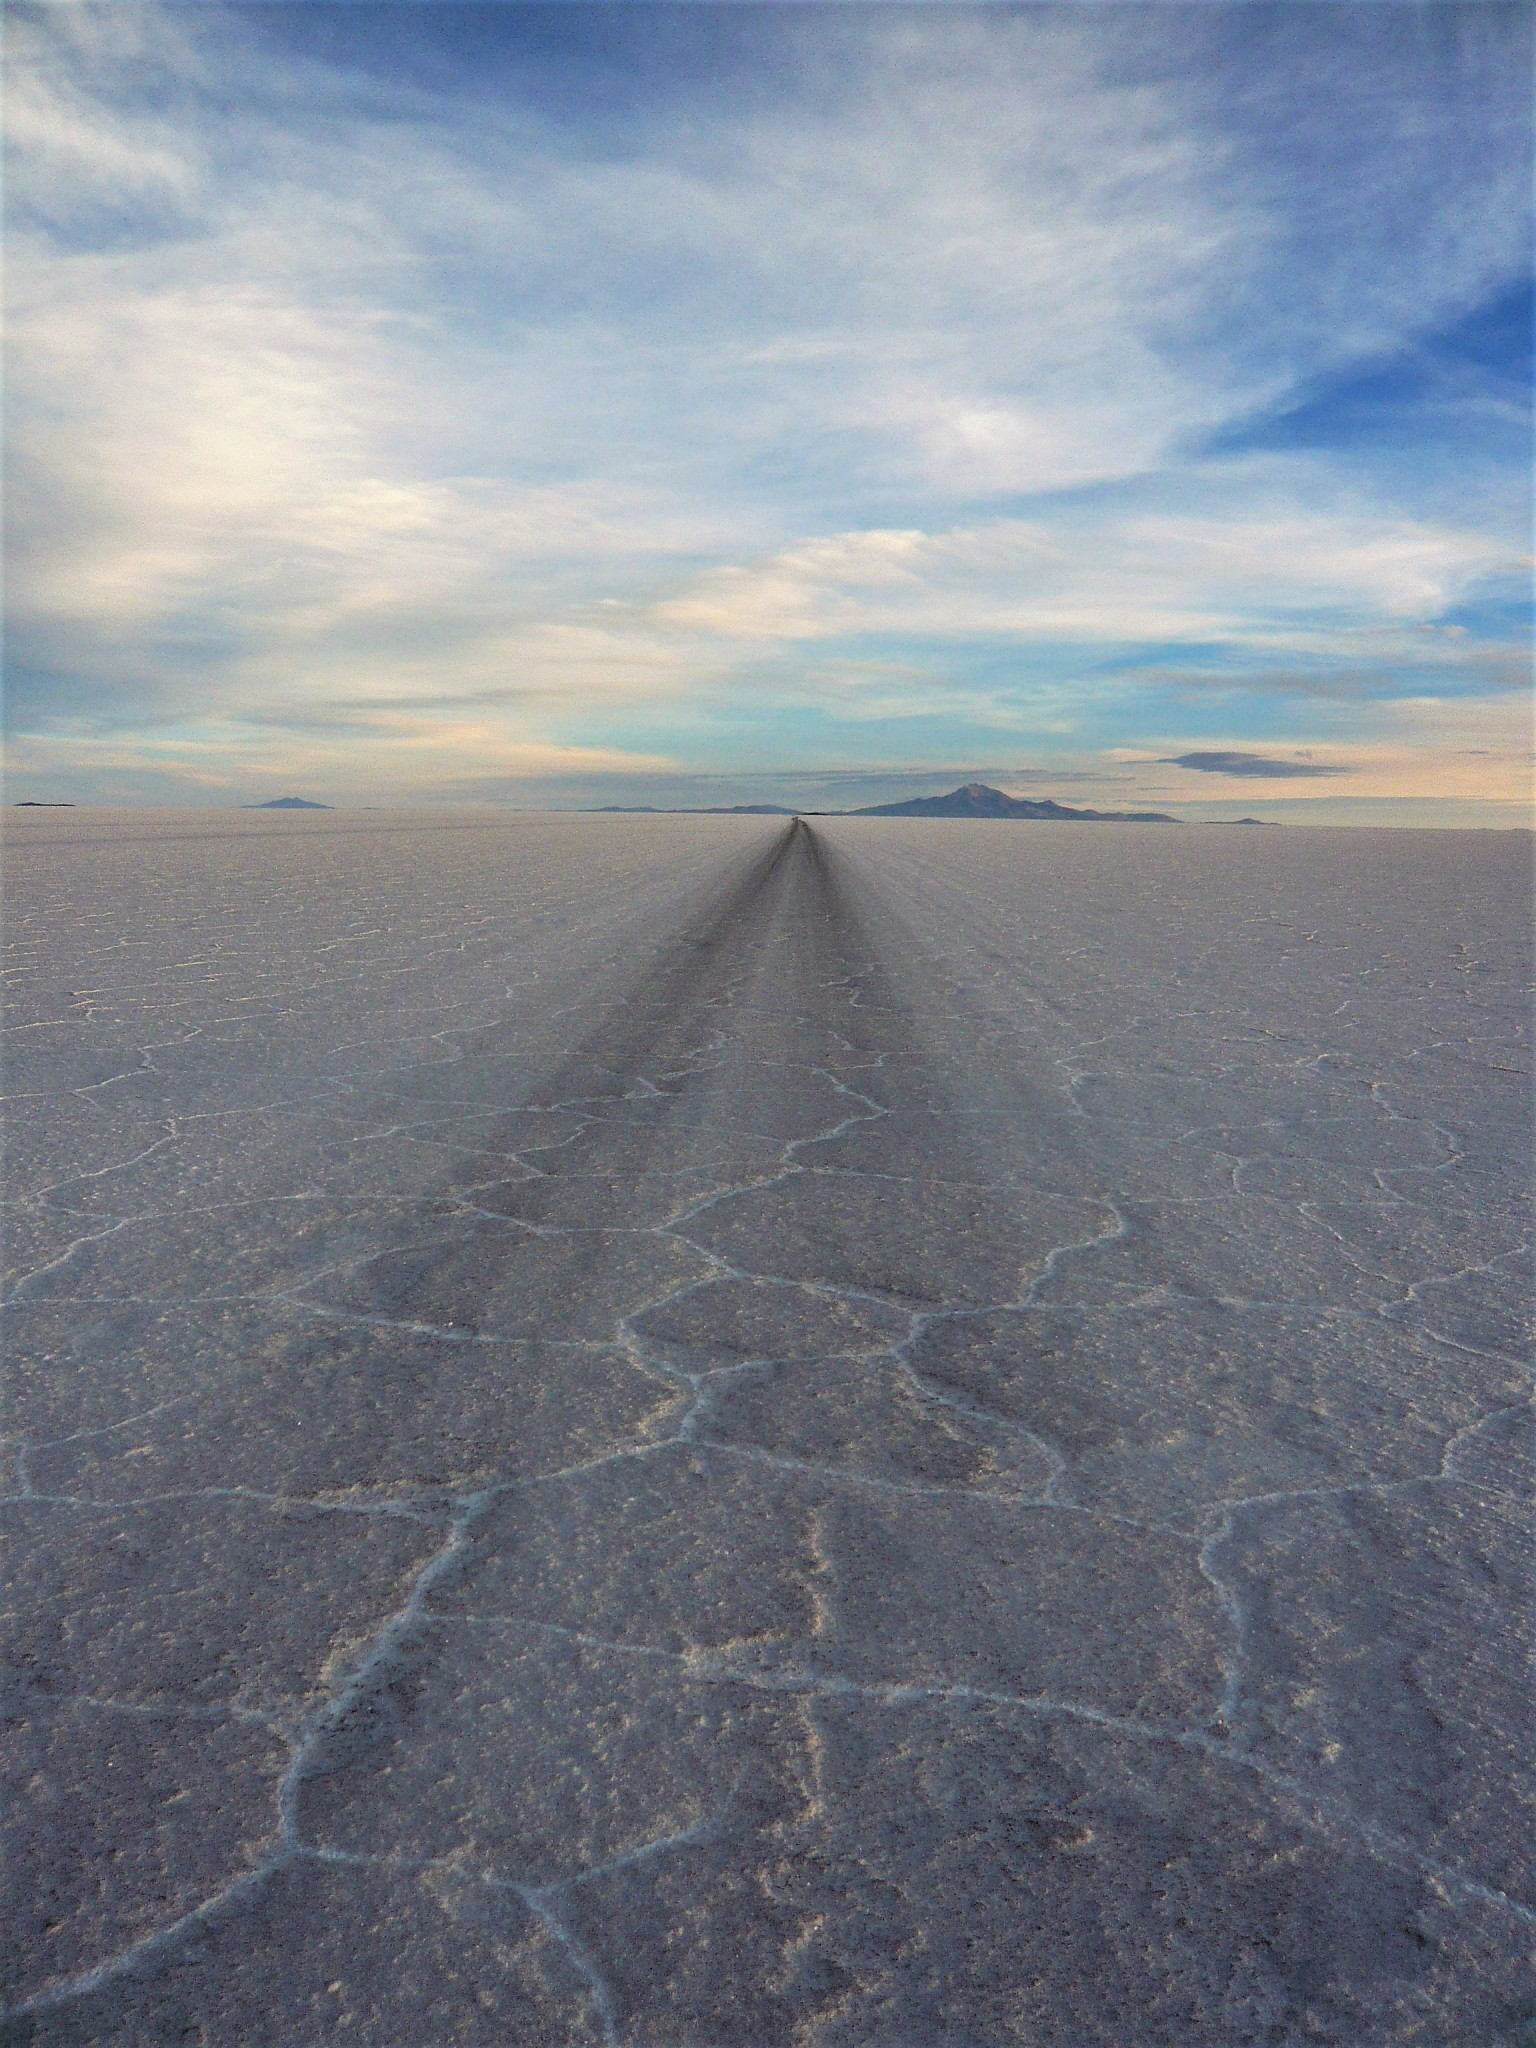 A path leading over the white salt flats of the Salar de Uyuni in Bolivia towards the horizon and a blue sky.